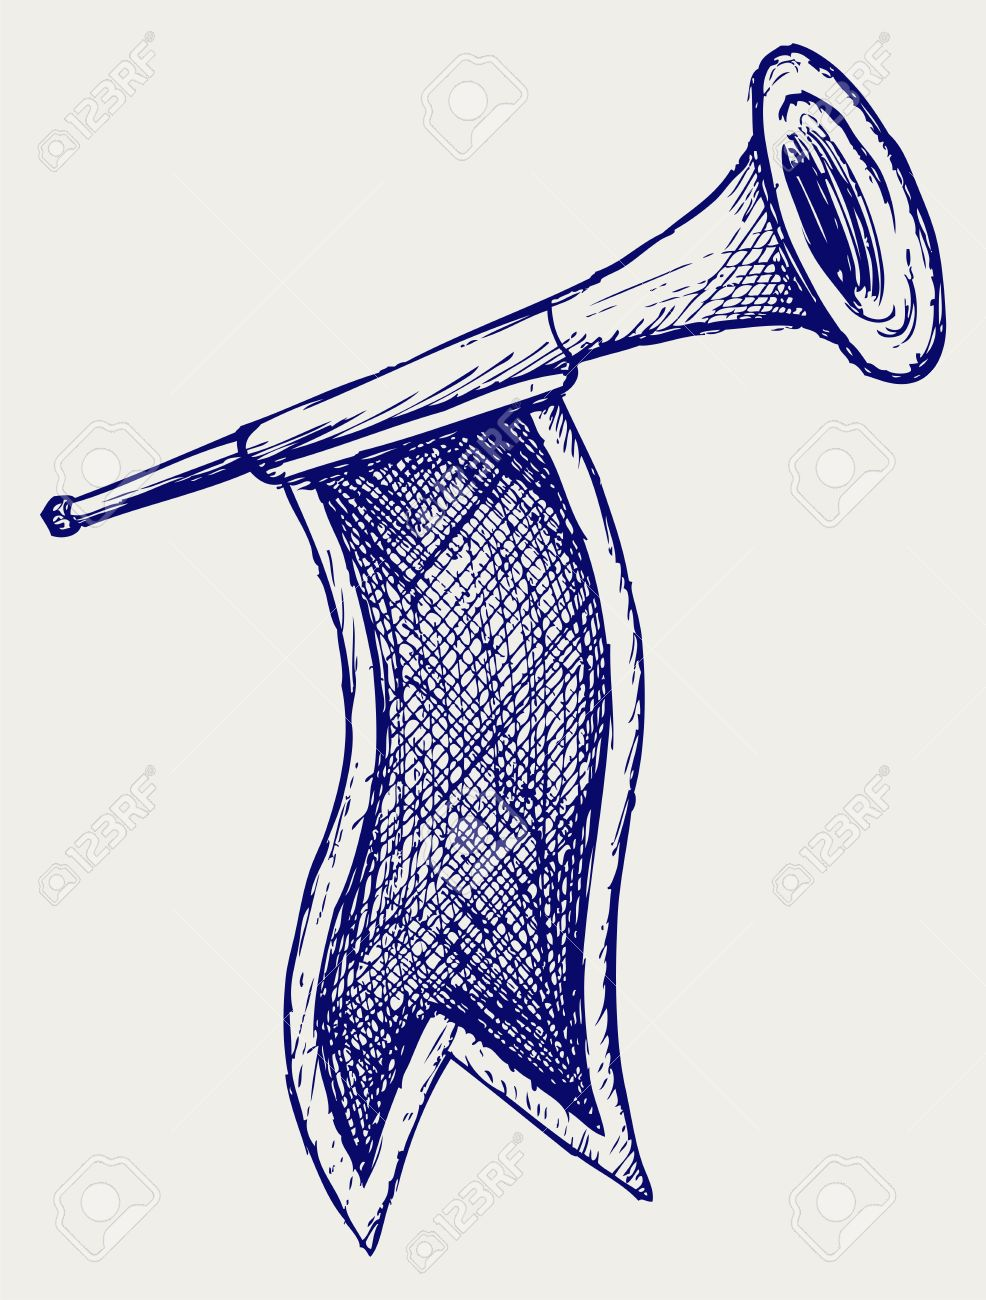 Fanfare Doodle Style Royalty Free Cliparts, Vectors, And Stock.